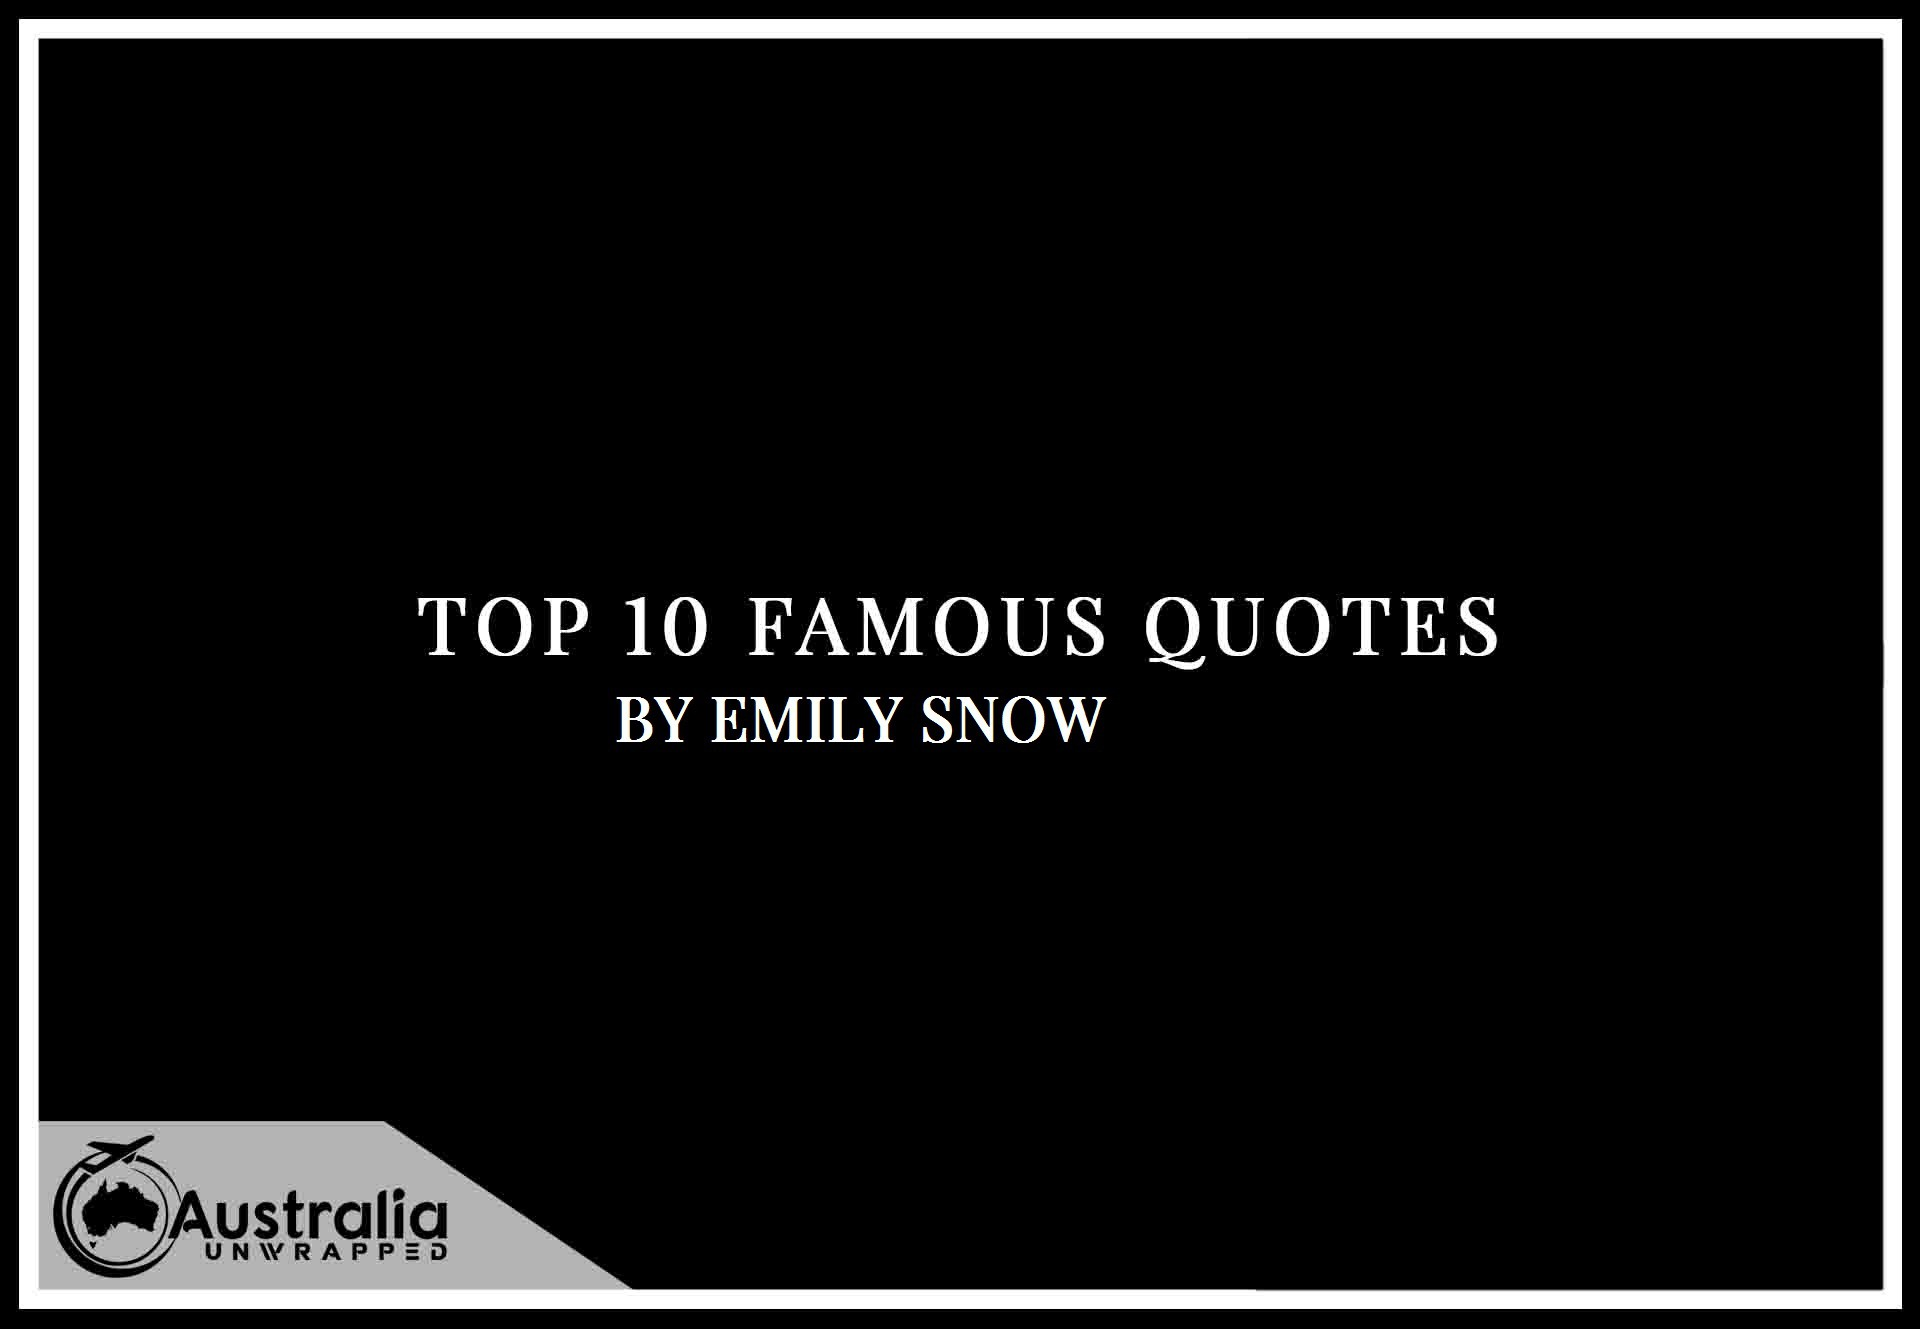 Emily Snow's Top 10 Popular and Famous Quotes